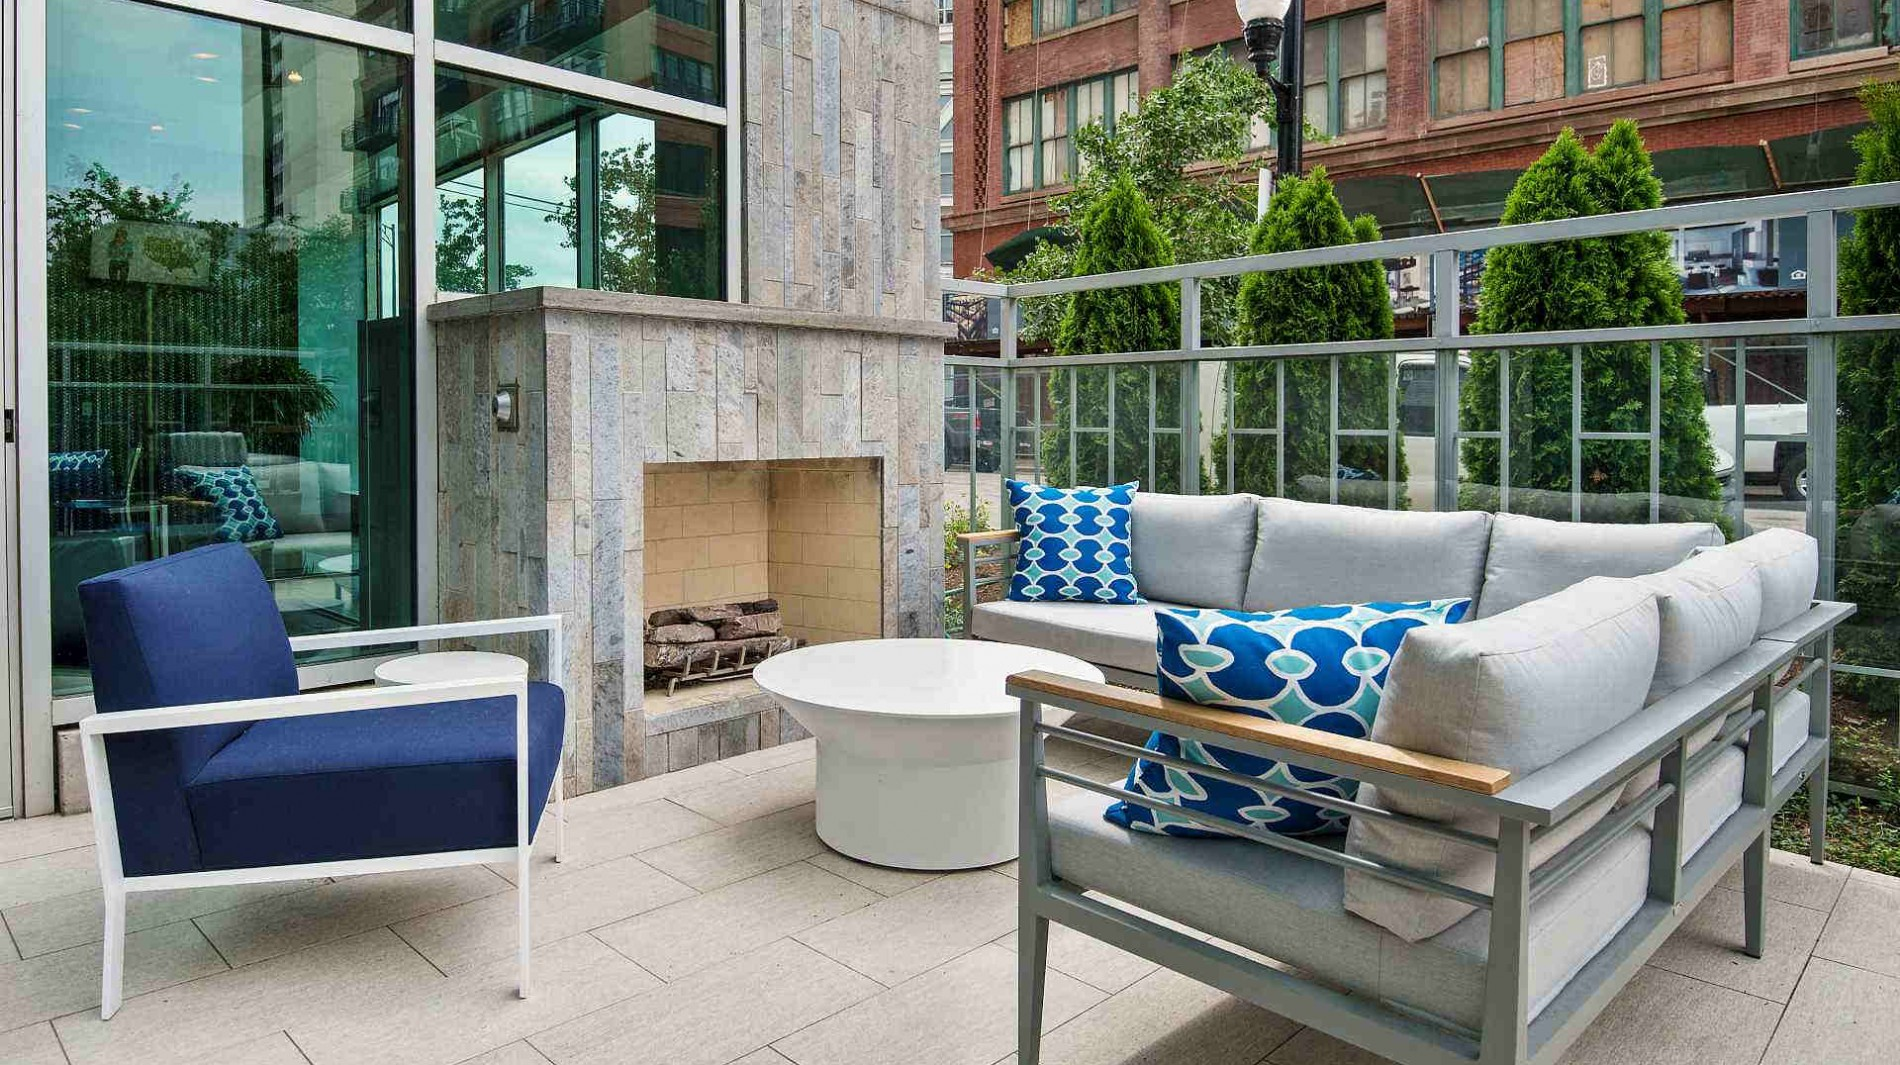 Private balconies and terraces available for outdoor entertaining.